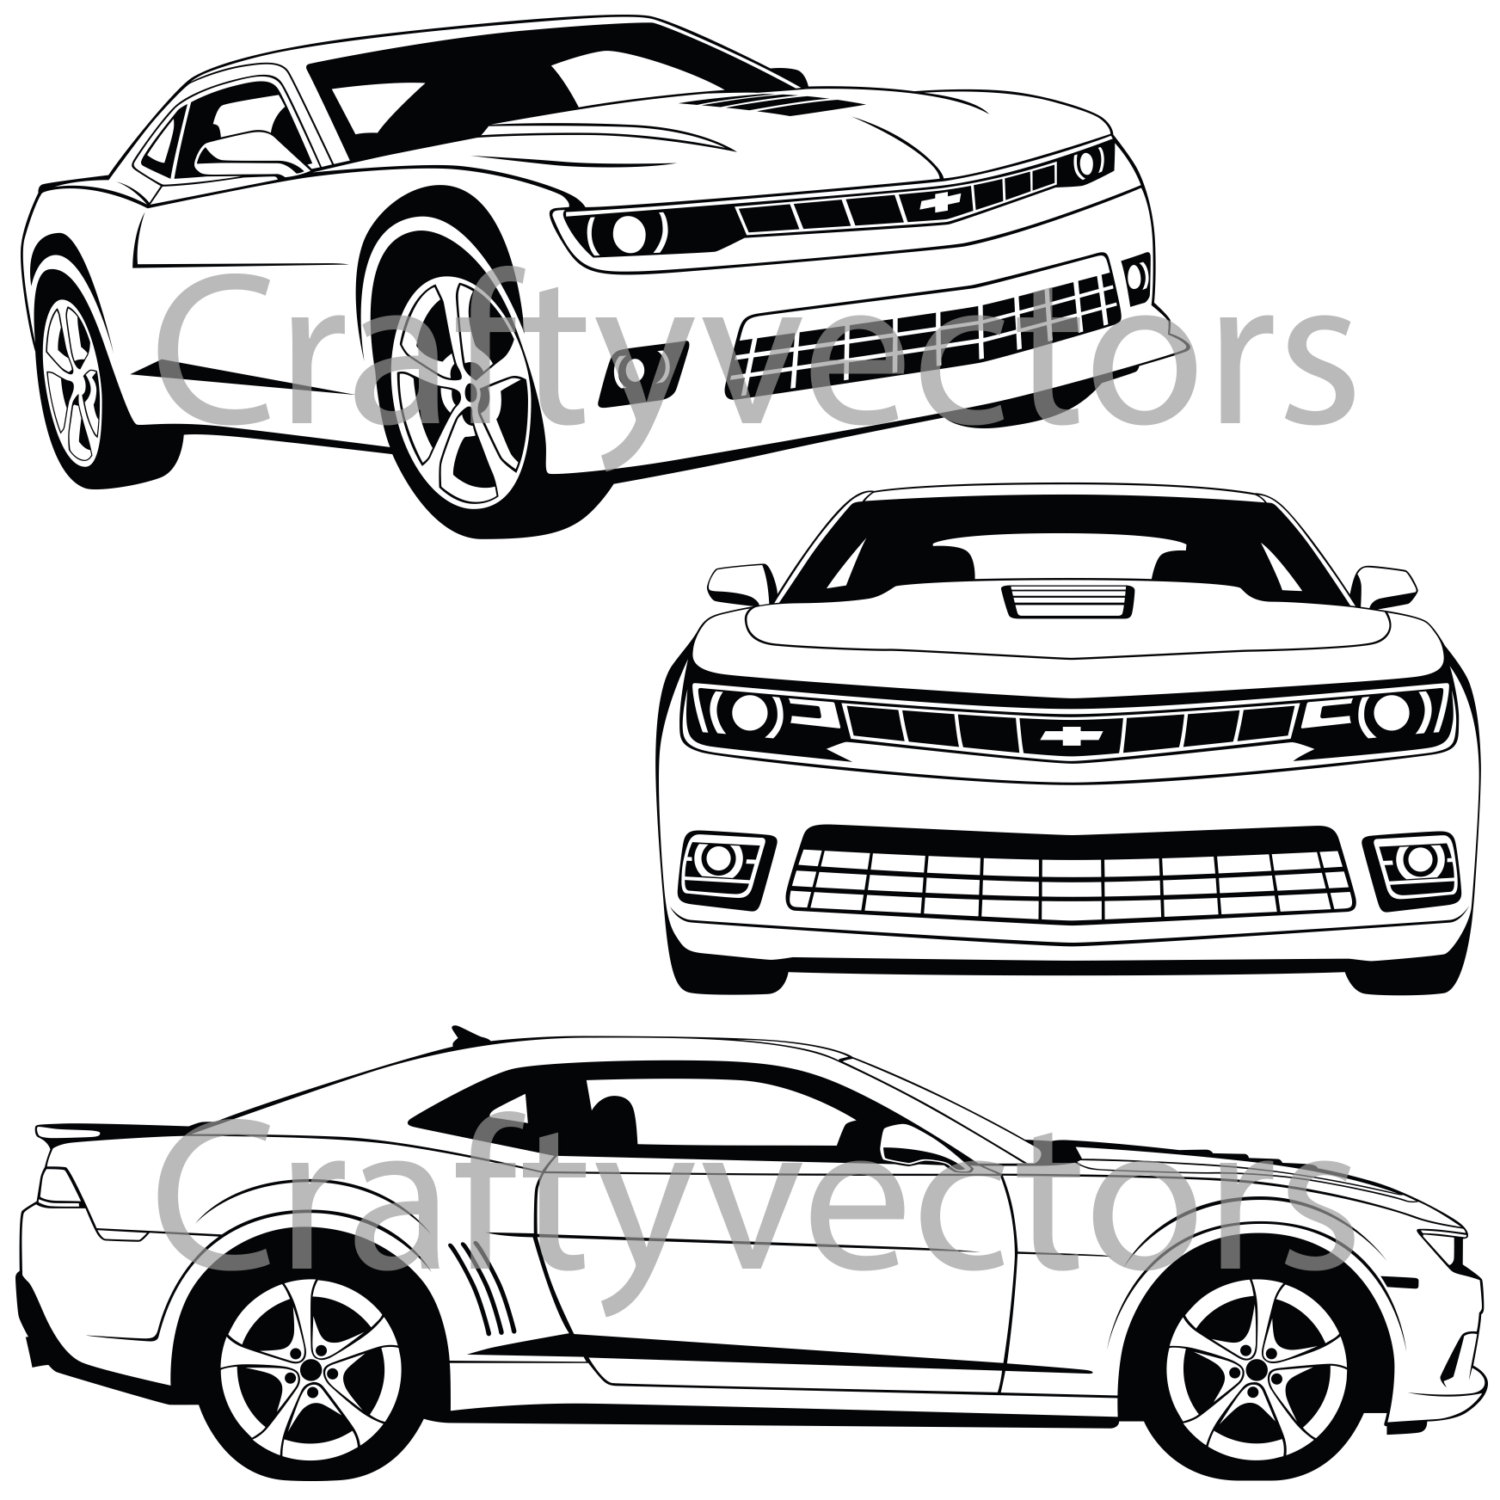 68 camaro drawing at getdrawings com